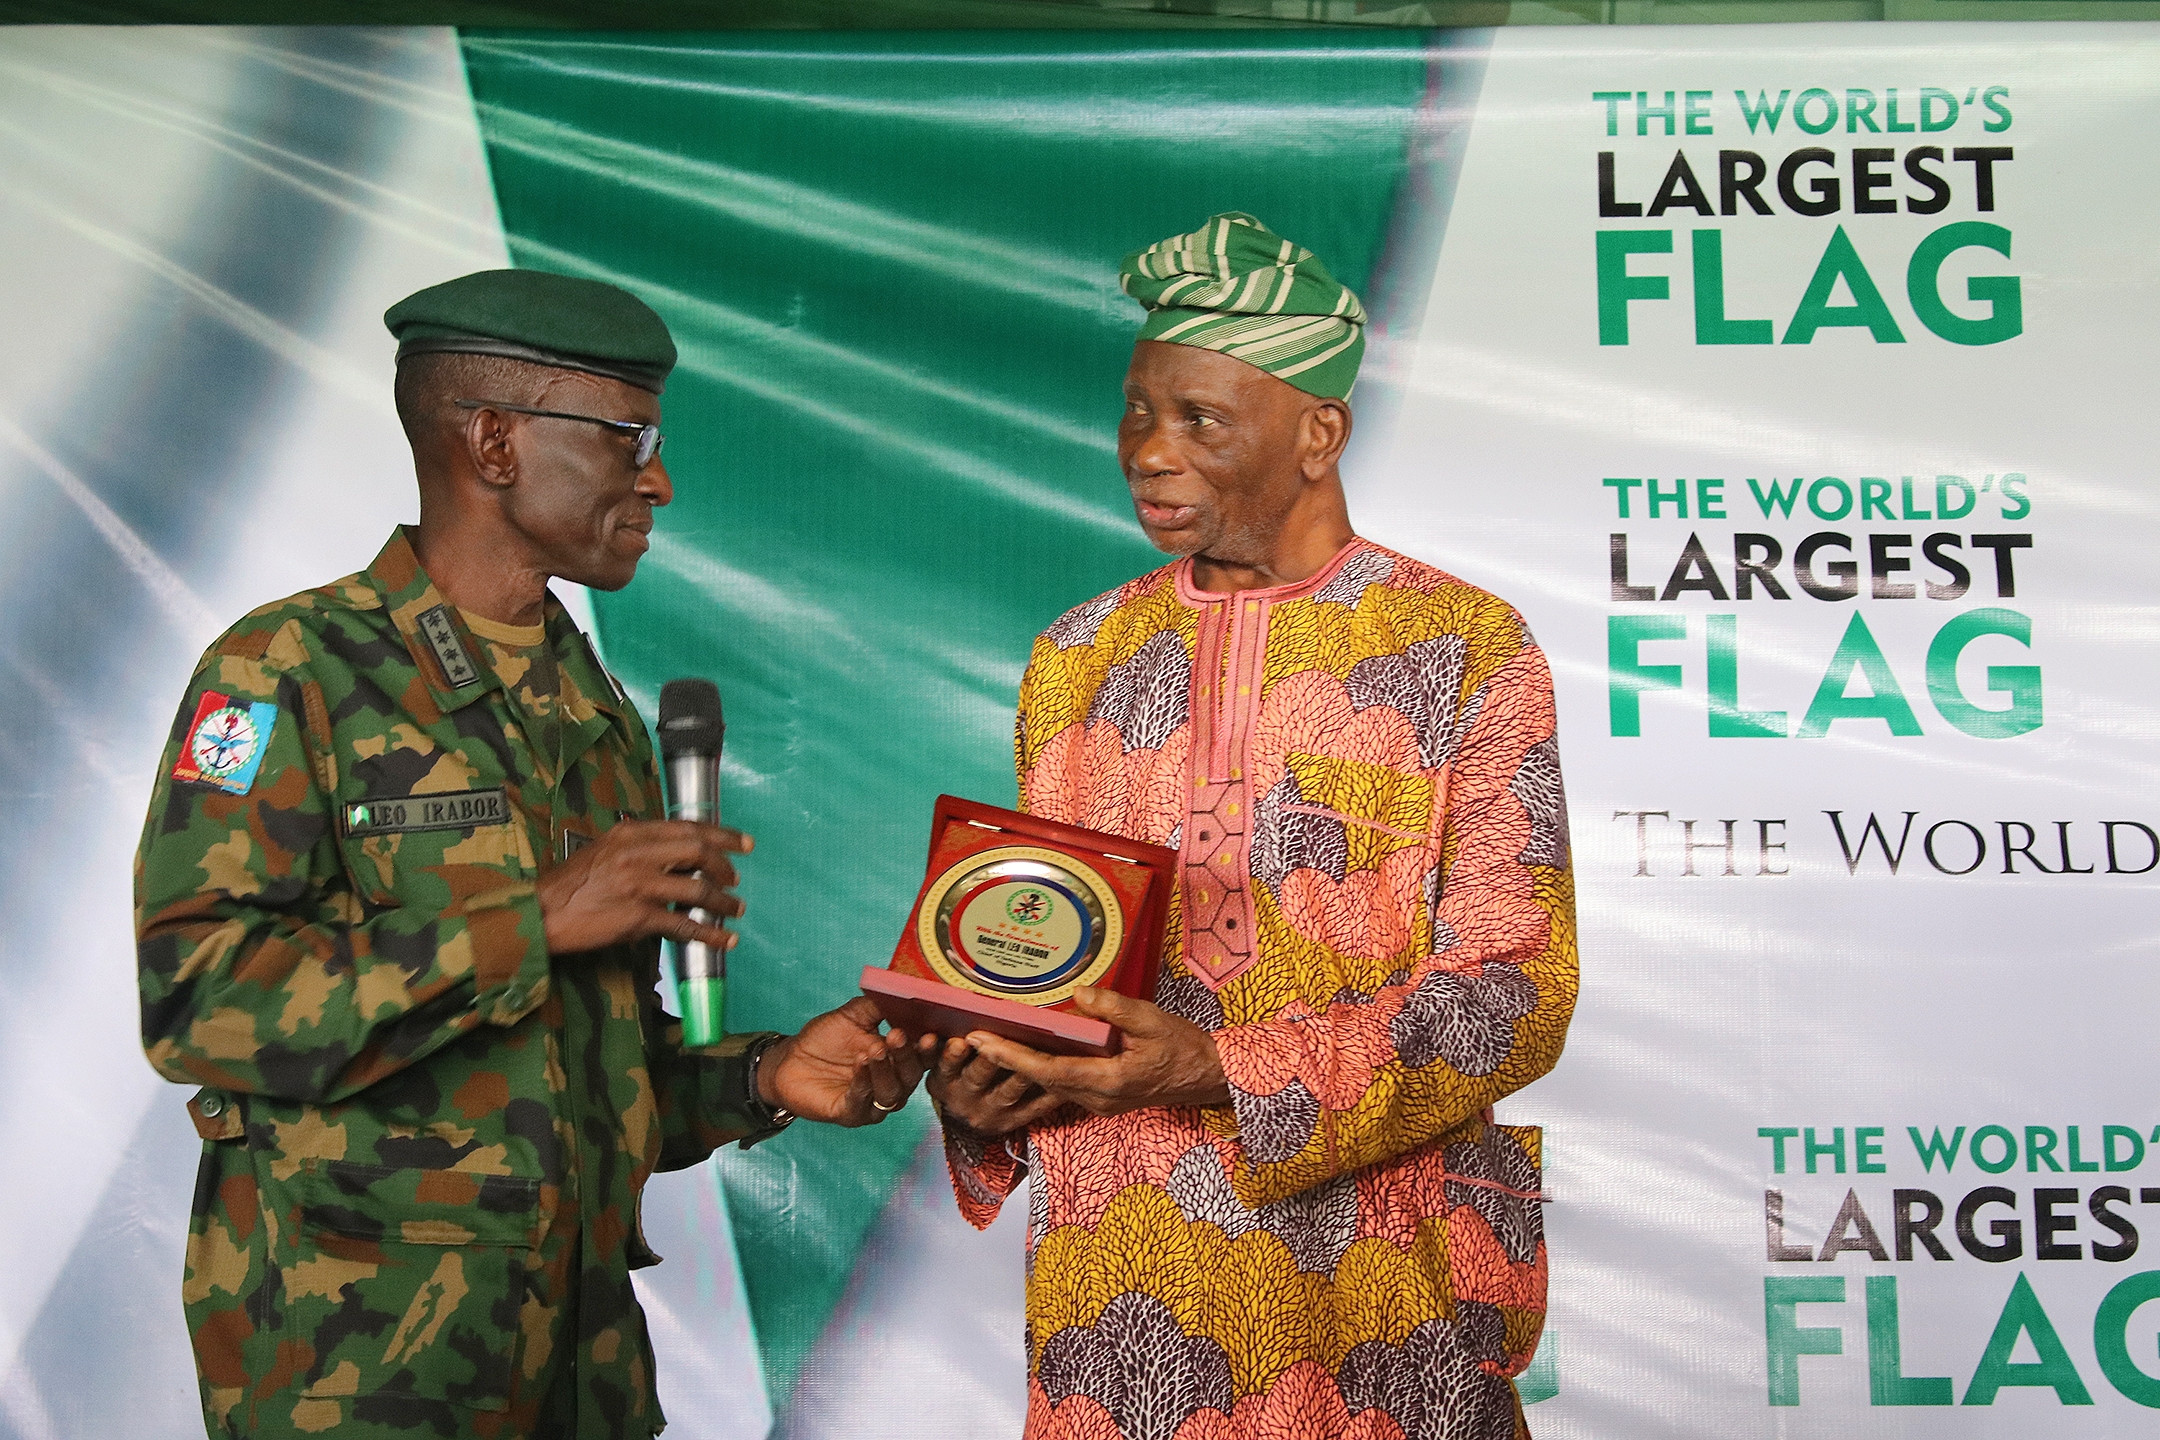 The World's Largest Flag to be hoisted was unveiled yesterday in Ibadan by the Octogenarian Pa Taiwo Akinkunmi